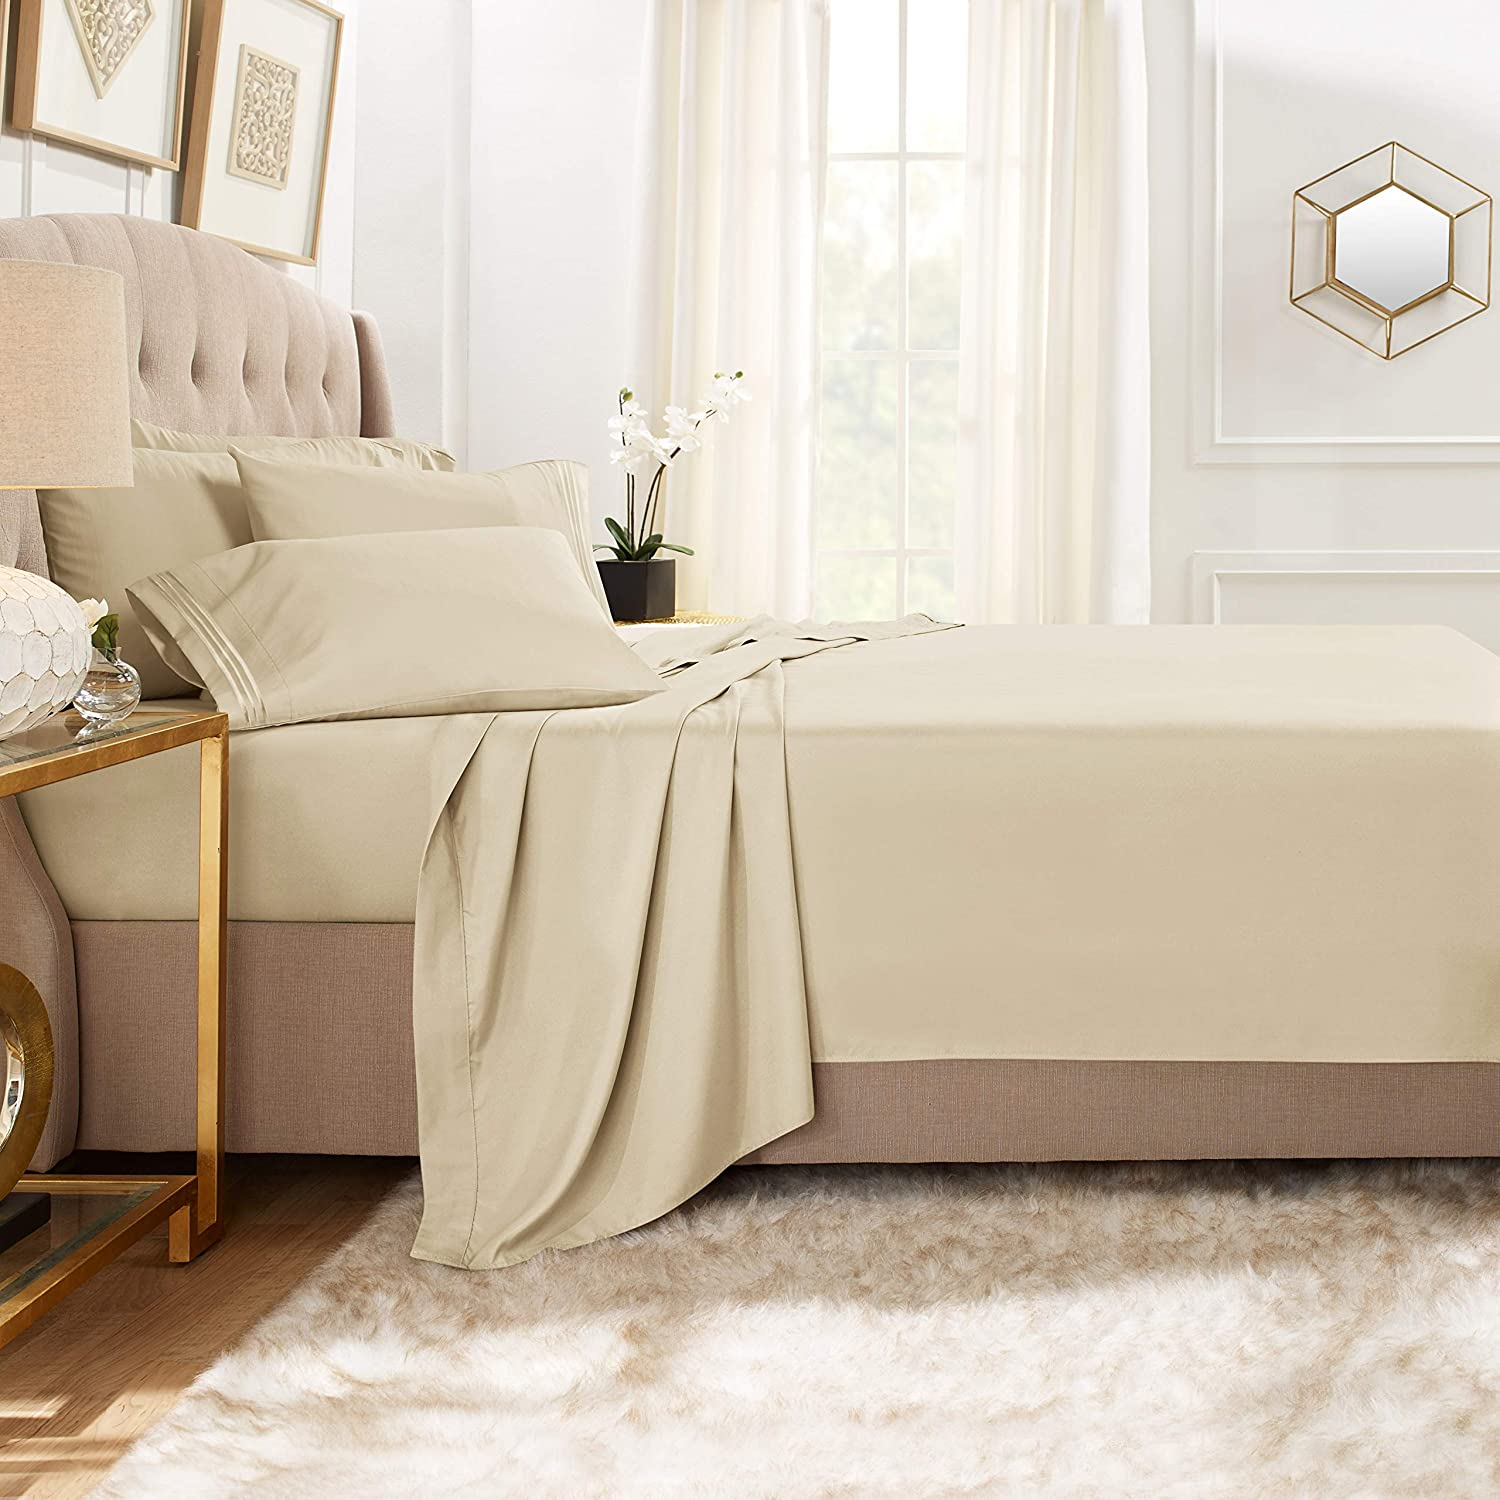 Clara Clark Premier 1800 Collection Bed Sheet Set with Extra Pillowcases Wrinkle, Fade & Stain Resistant, Twin XL, Beige Cream